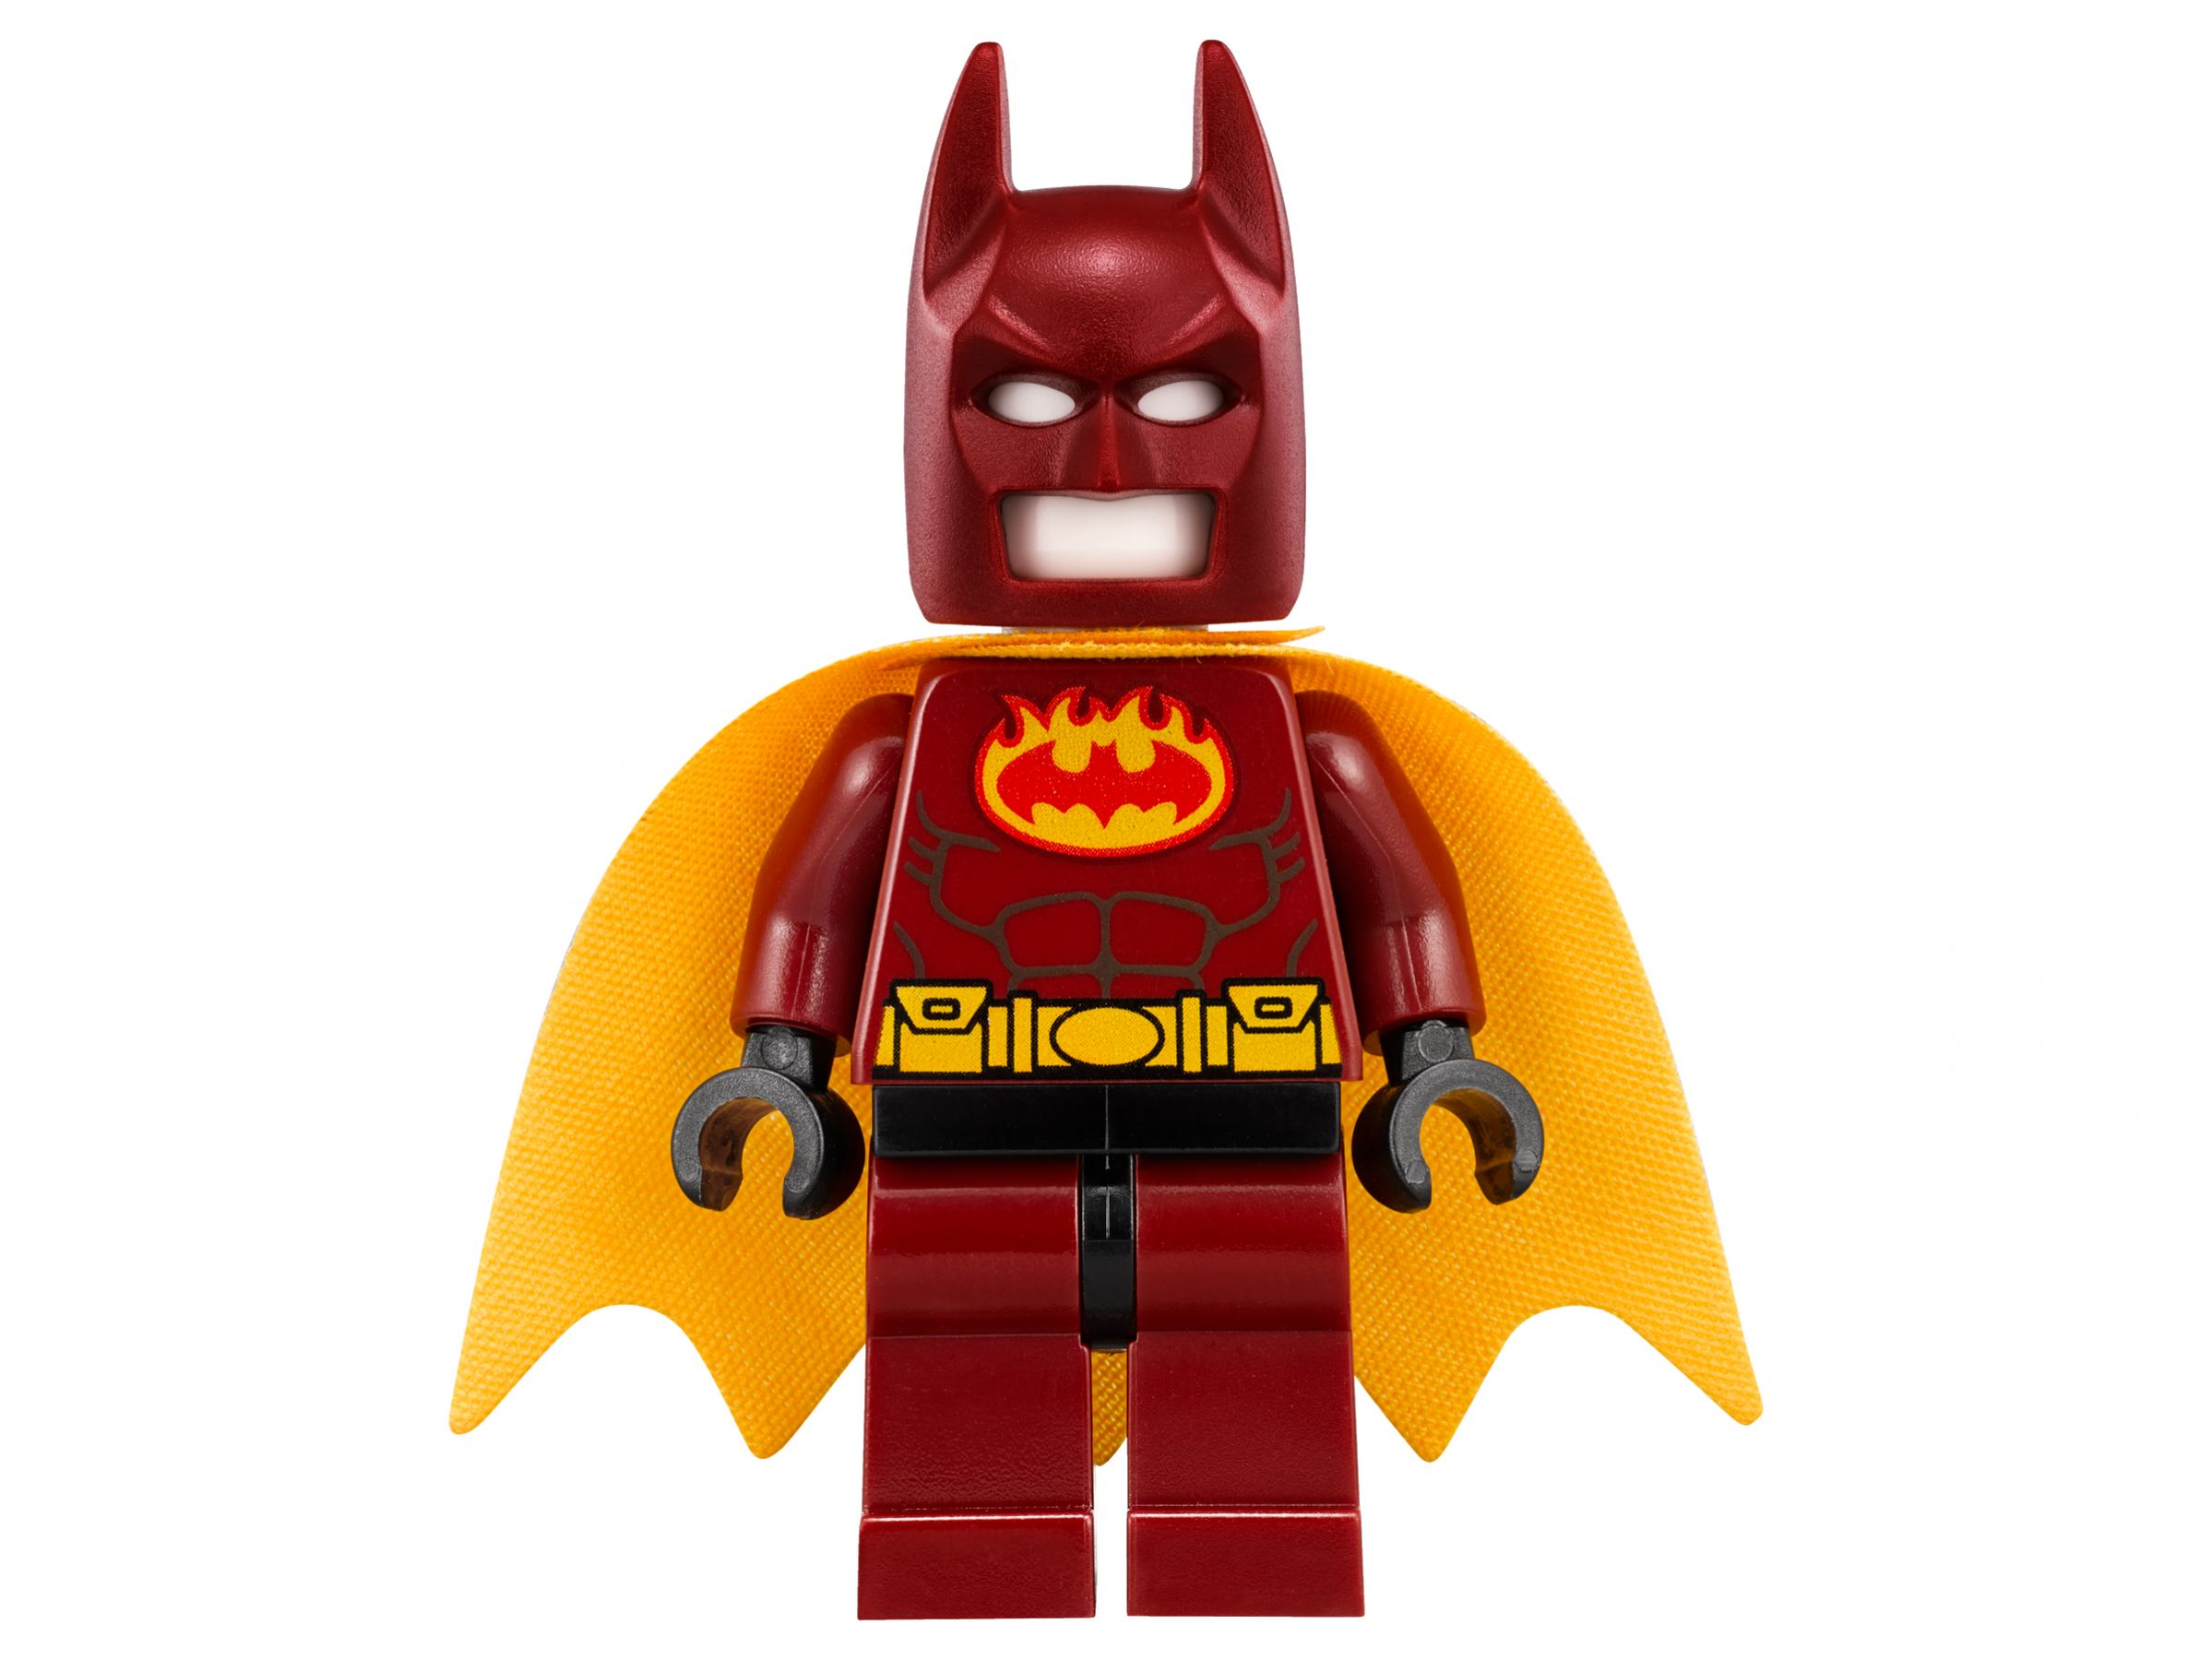 LEGO The LEGO Batman Movie 70923 Batman Spaceshuttle LEGO_70923_alt7.jpg